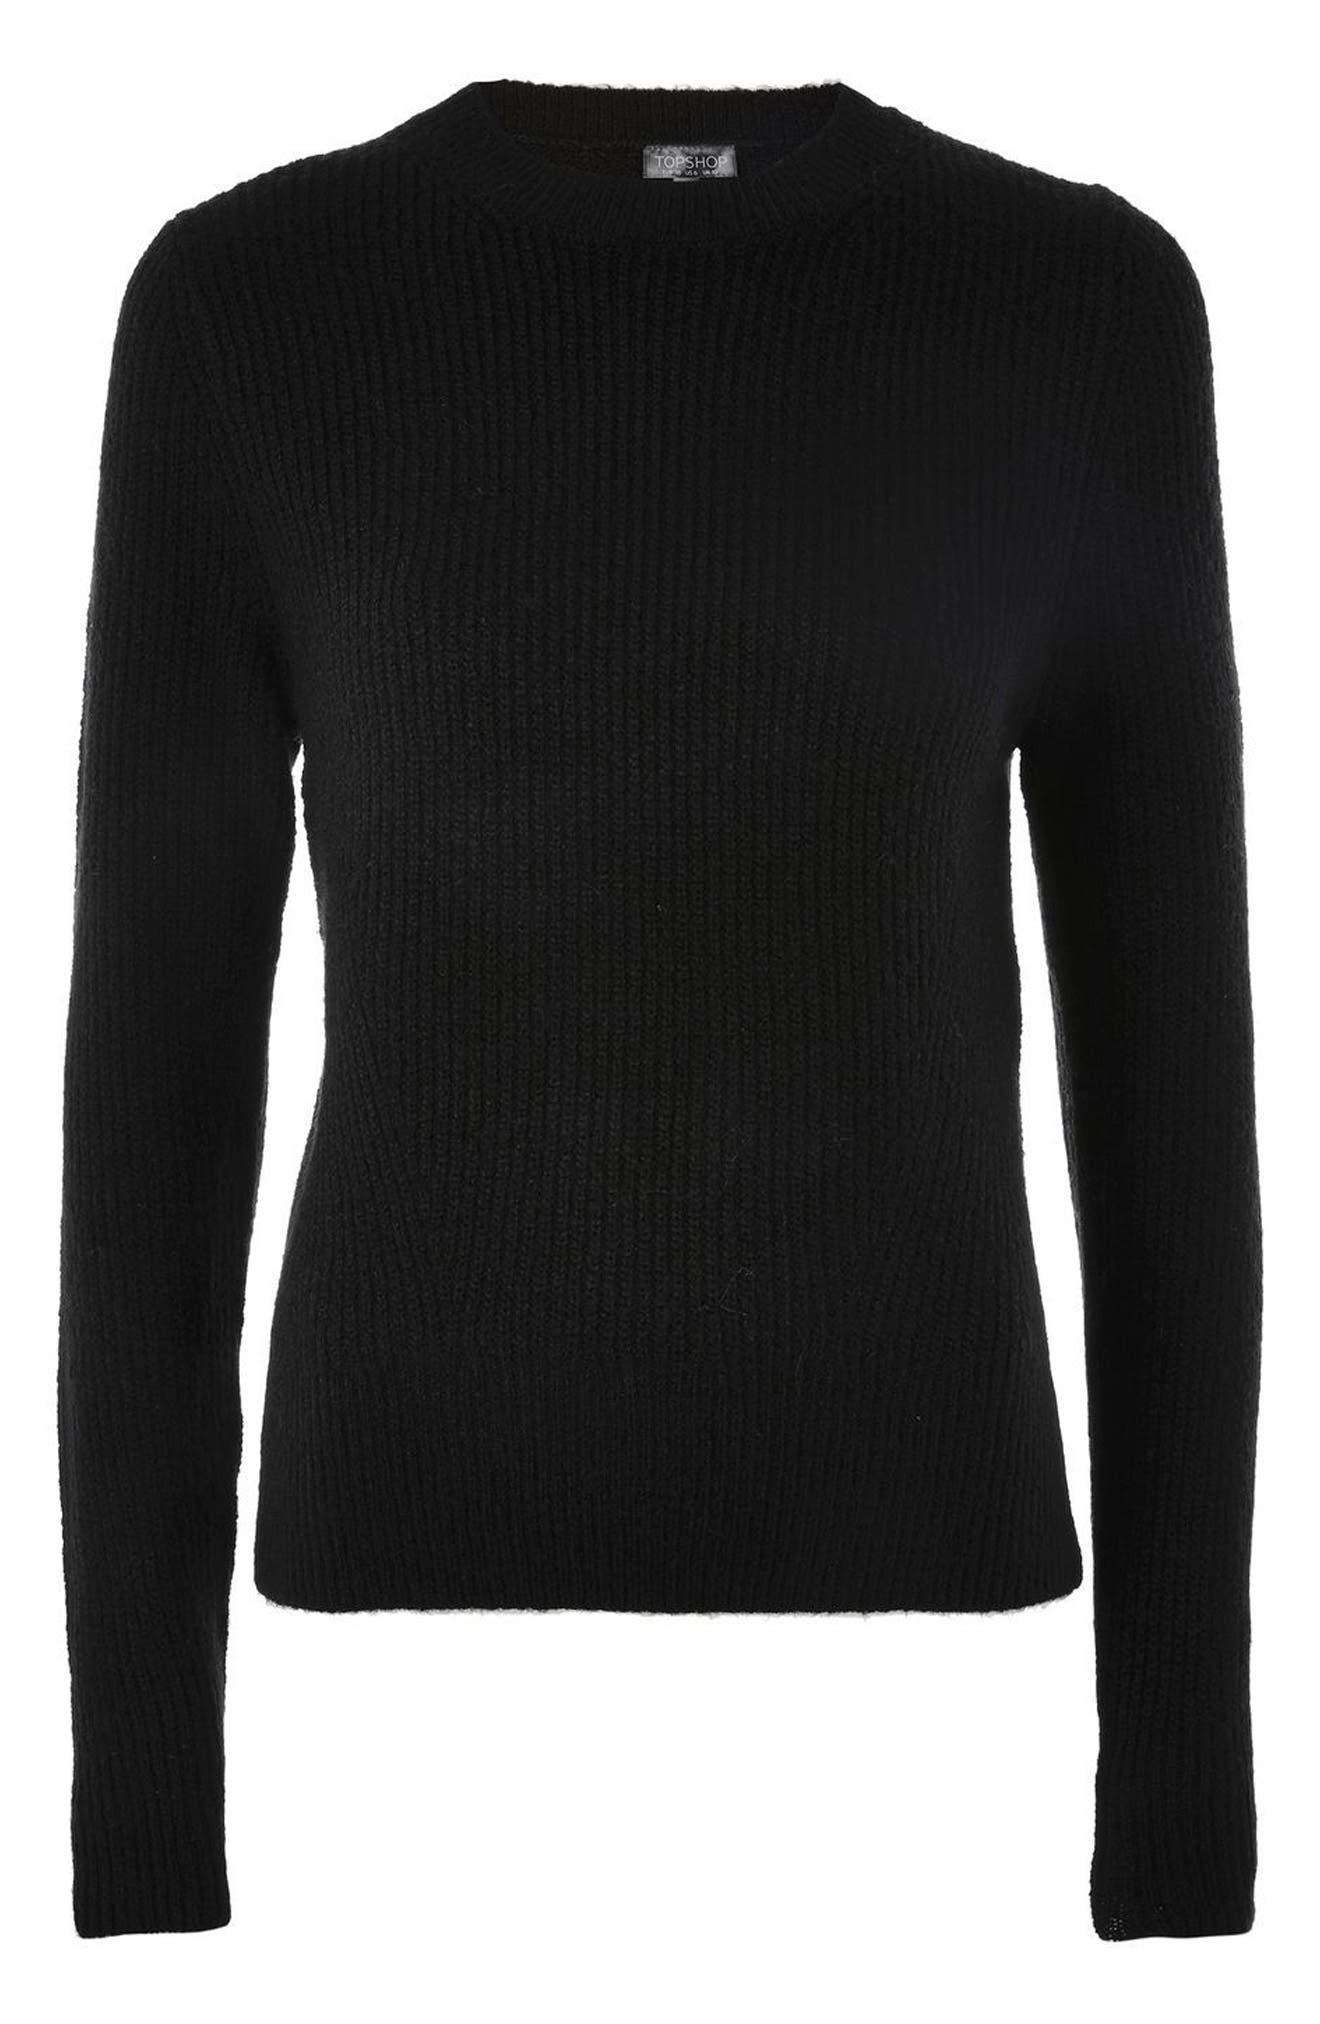 Ribbed Crewneck Sweater,                             Alternate thumbnail 4, color,                             001